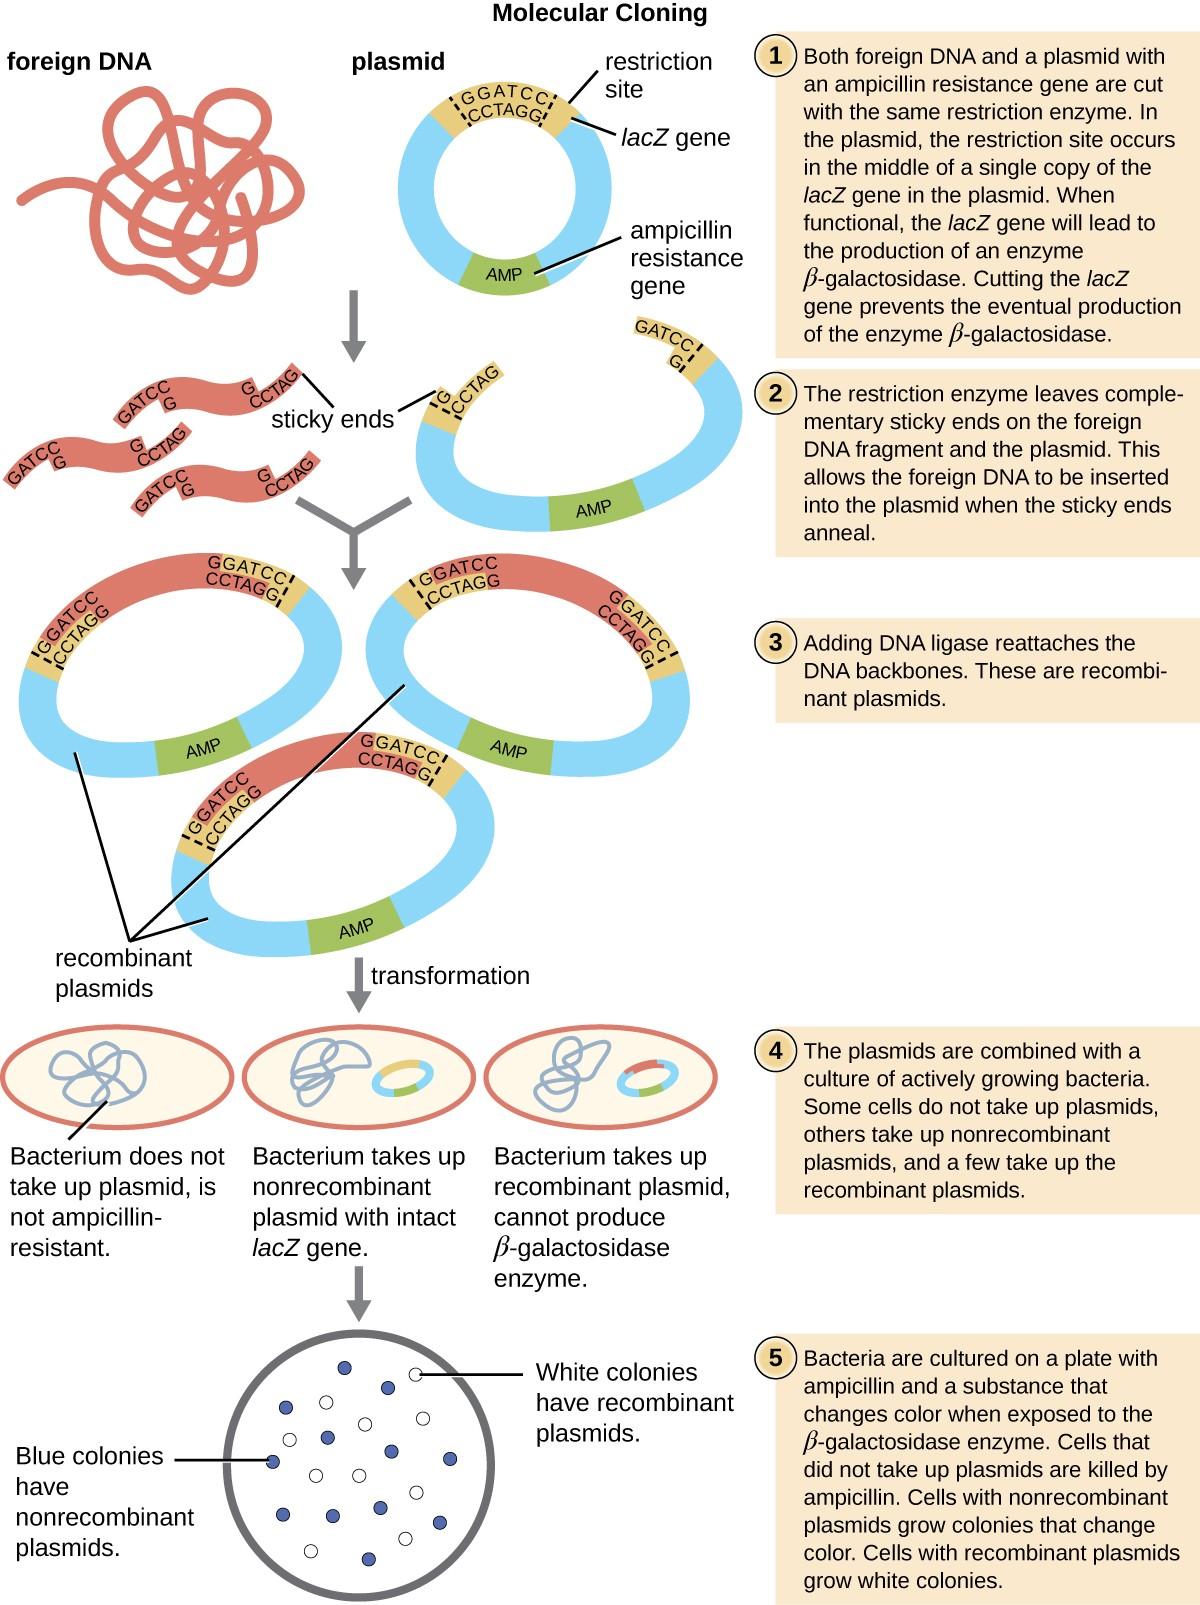 hight resolution of a diagram explaining molecular cloning both foreign dna and a plasmid are cut with the